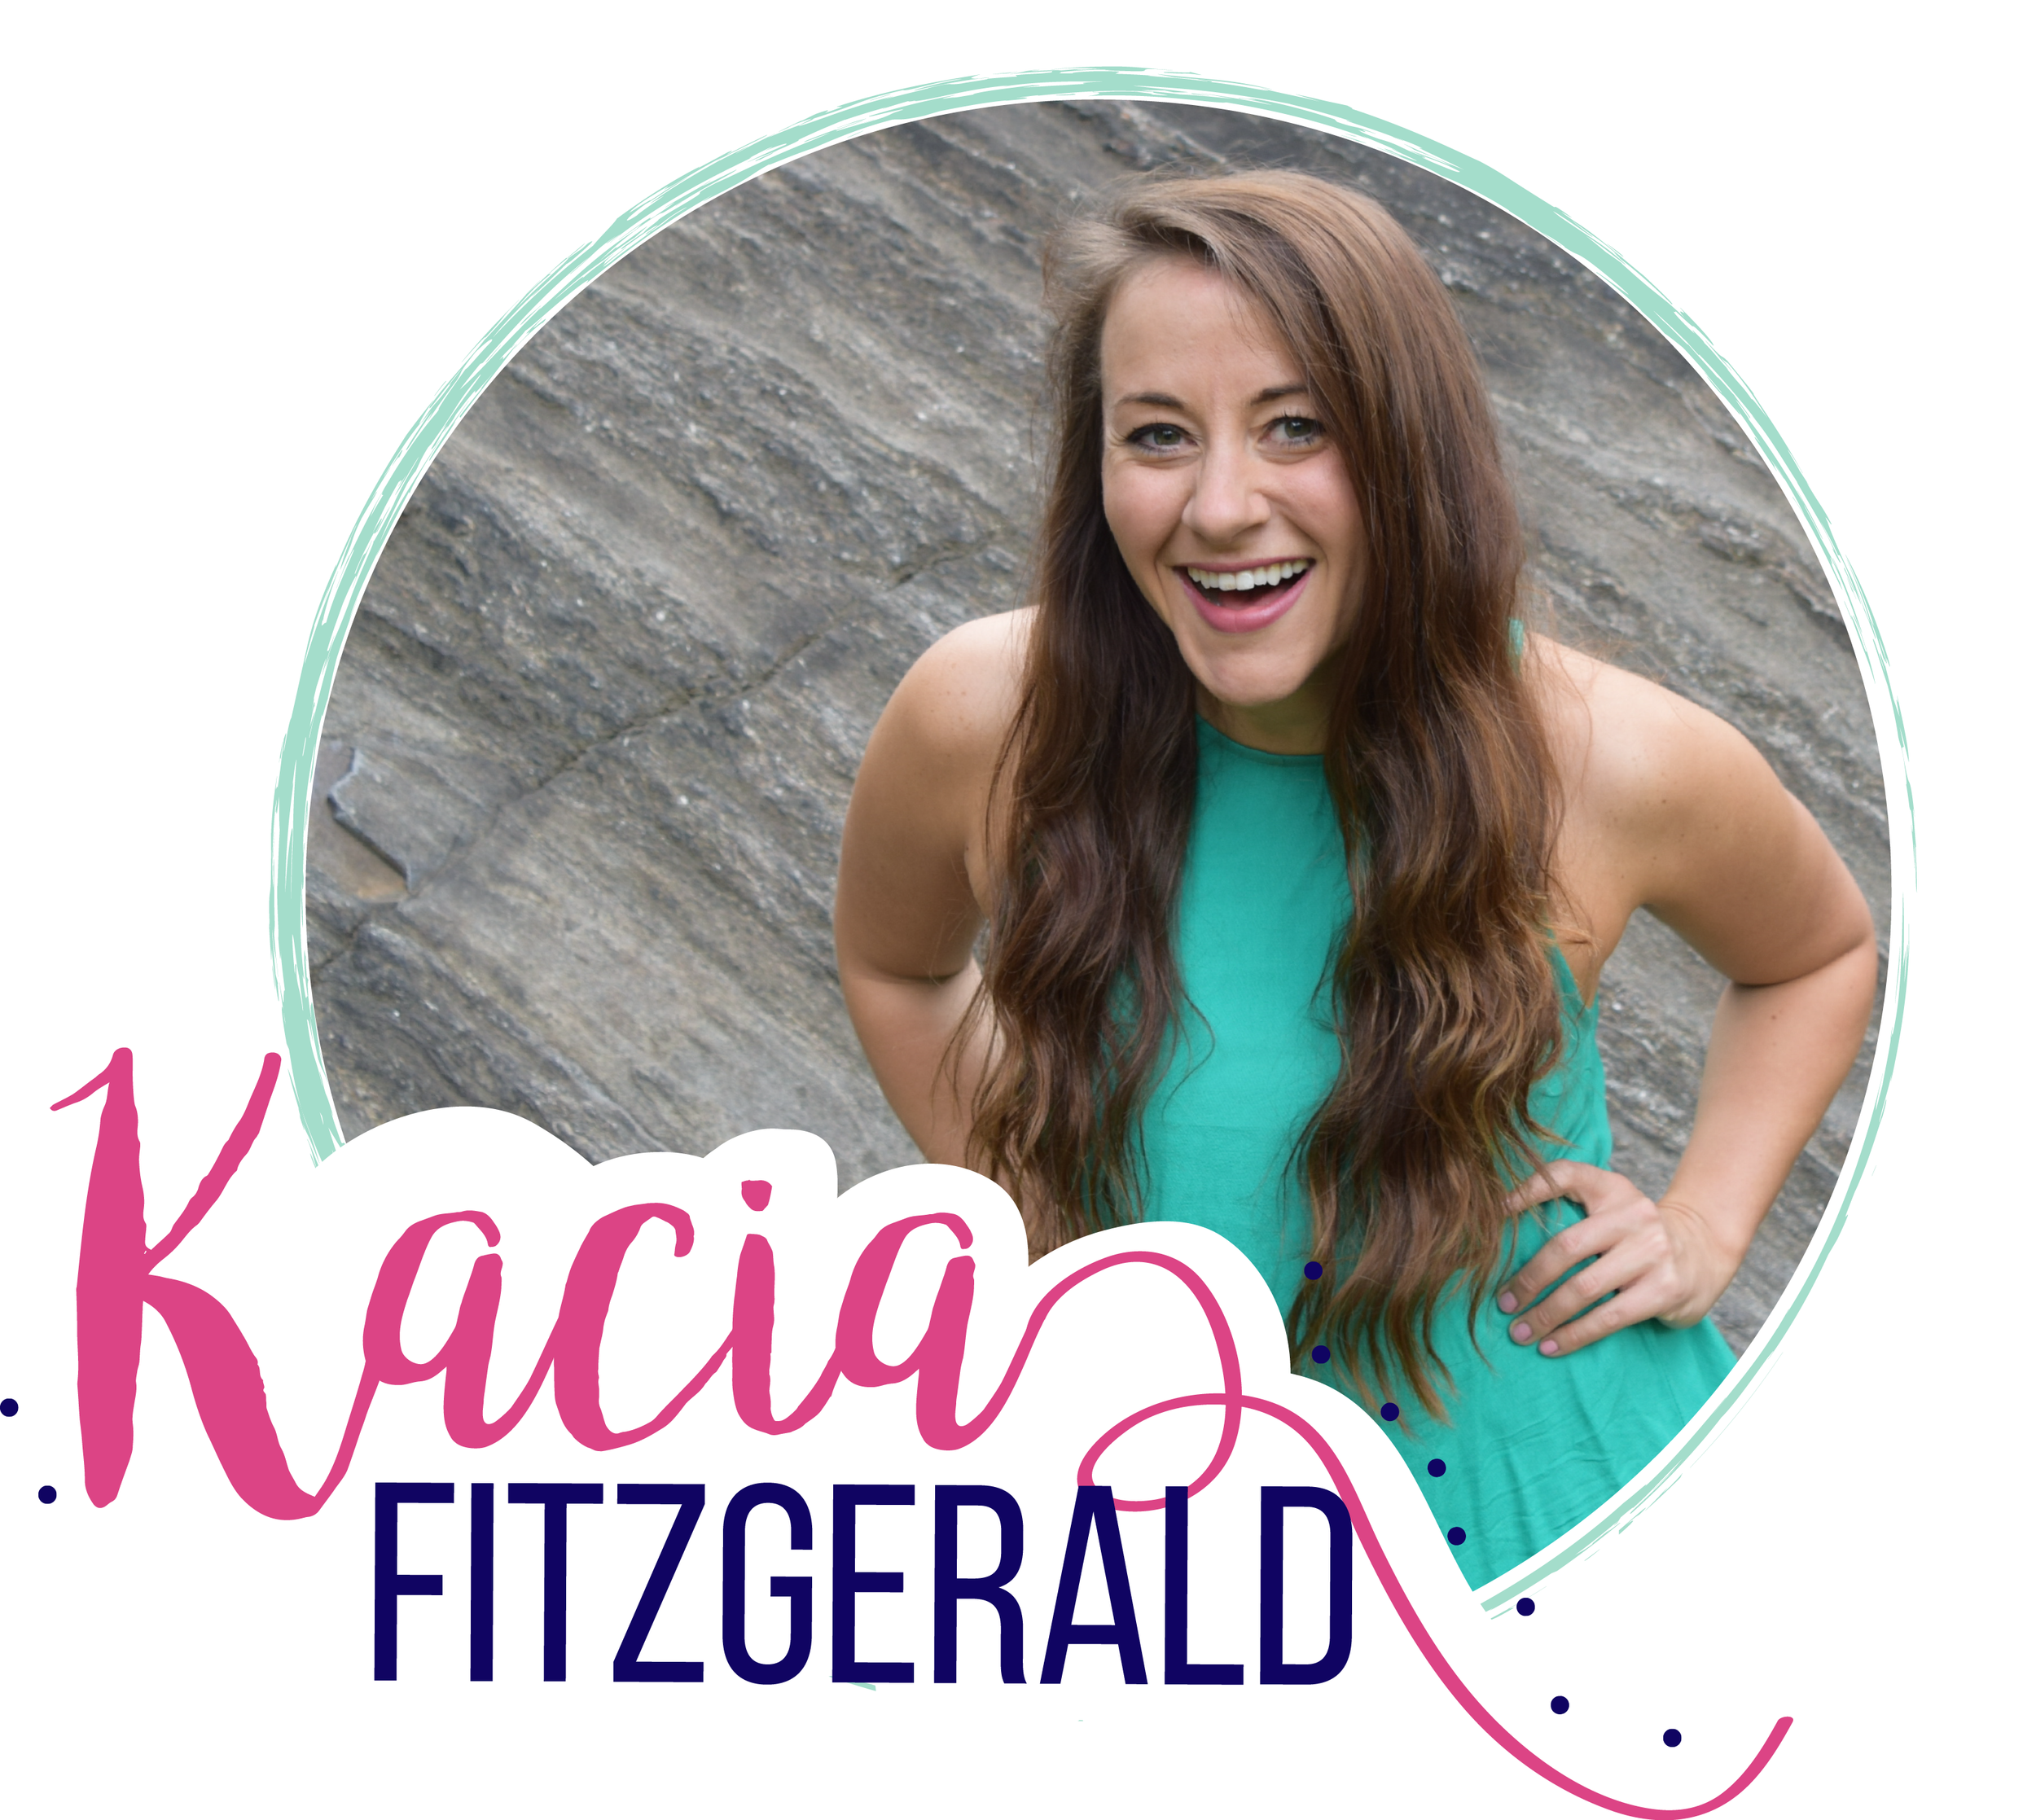 Kacia Fitzgerald Fit Foundation :: A team of online health and fitness coaches